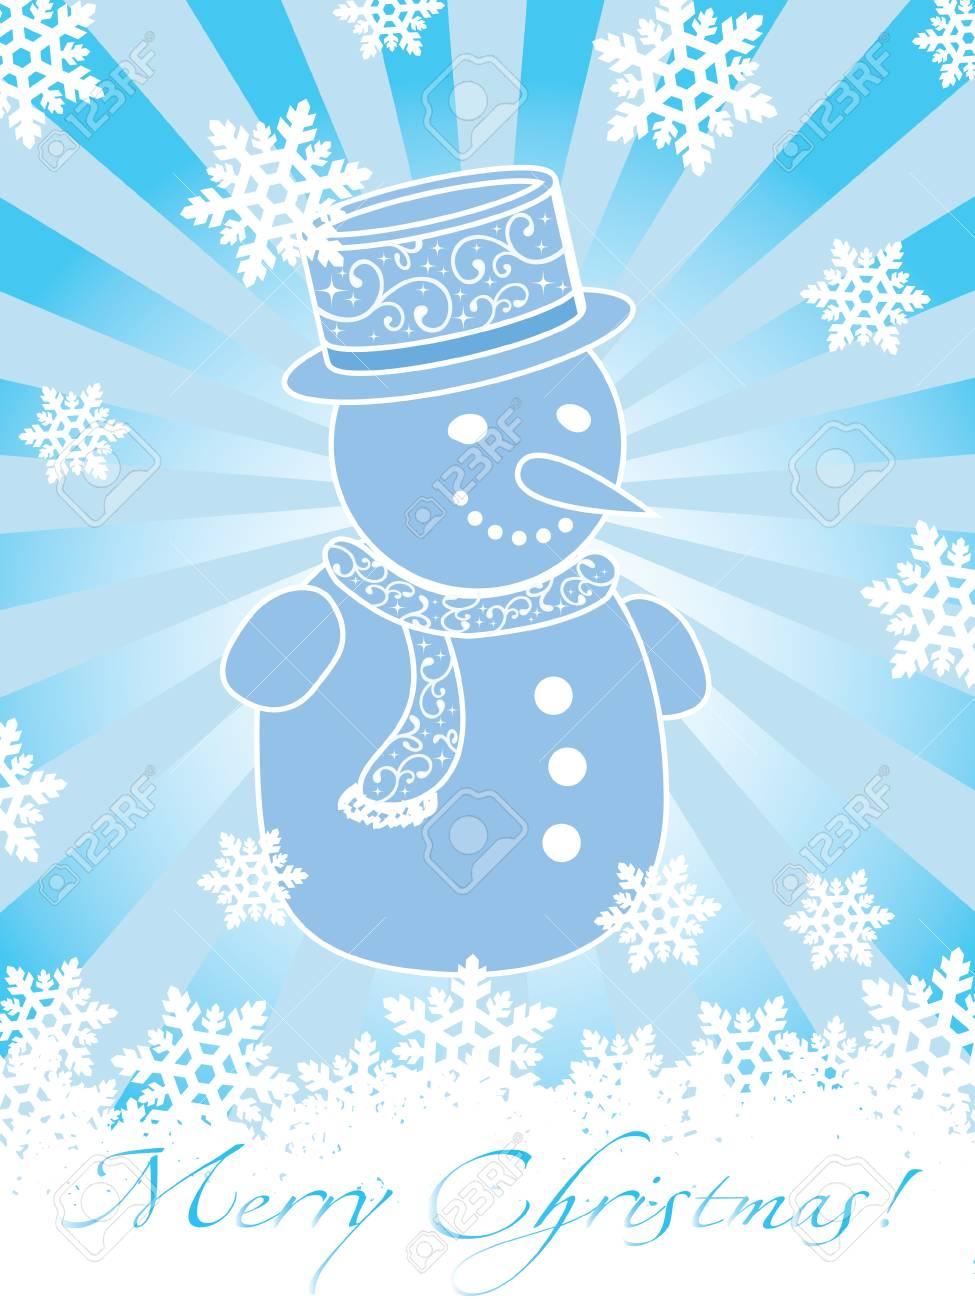 Christmas card with snowman and snowflakes on blue background with rays Stock Vector - 3806440